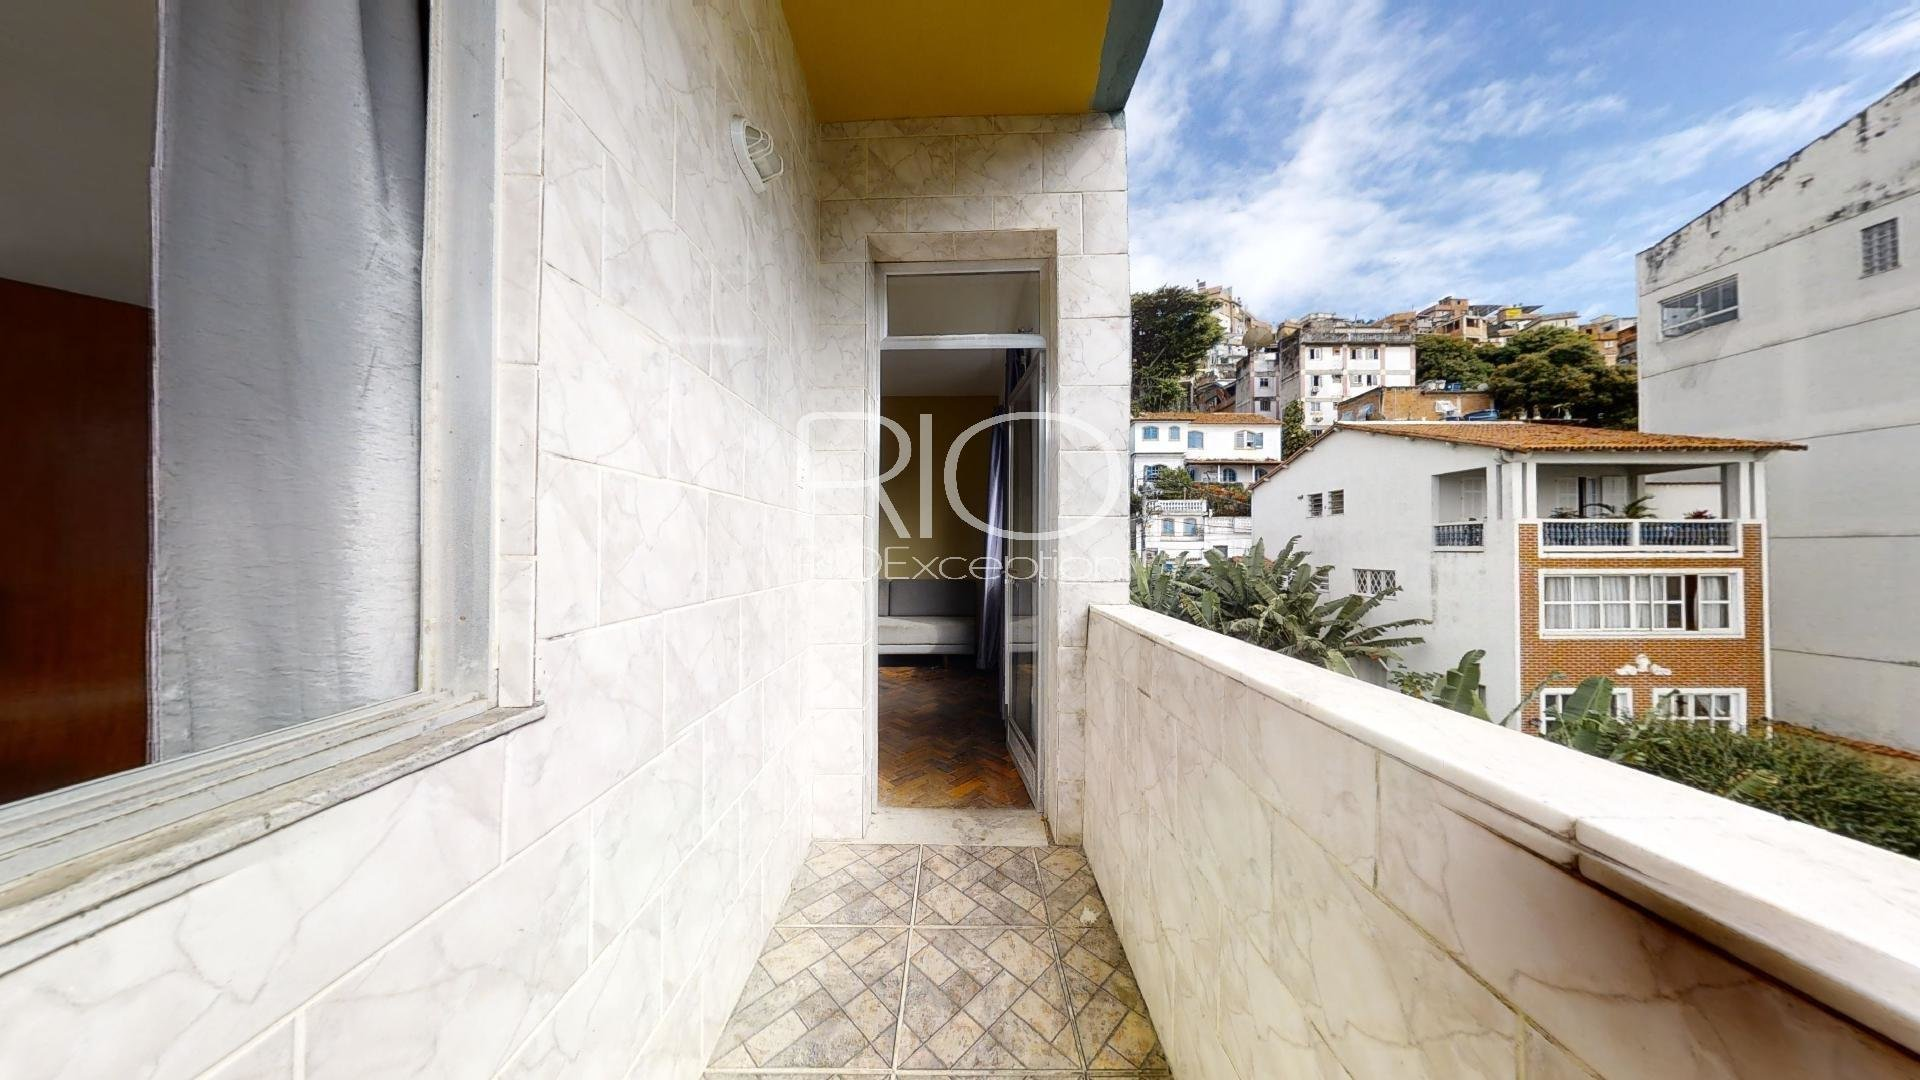 Charming apartment with balcony 10 minutes from the beaches.